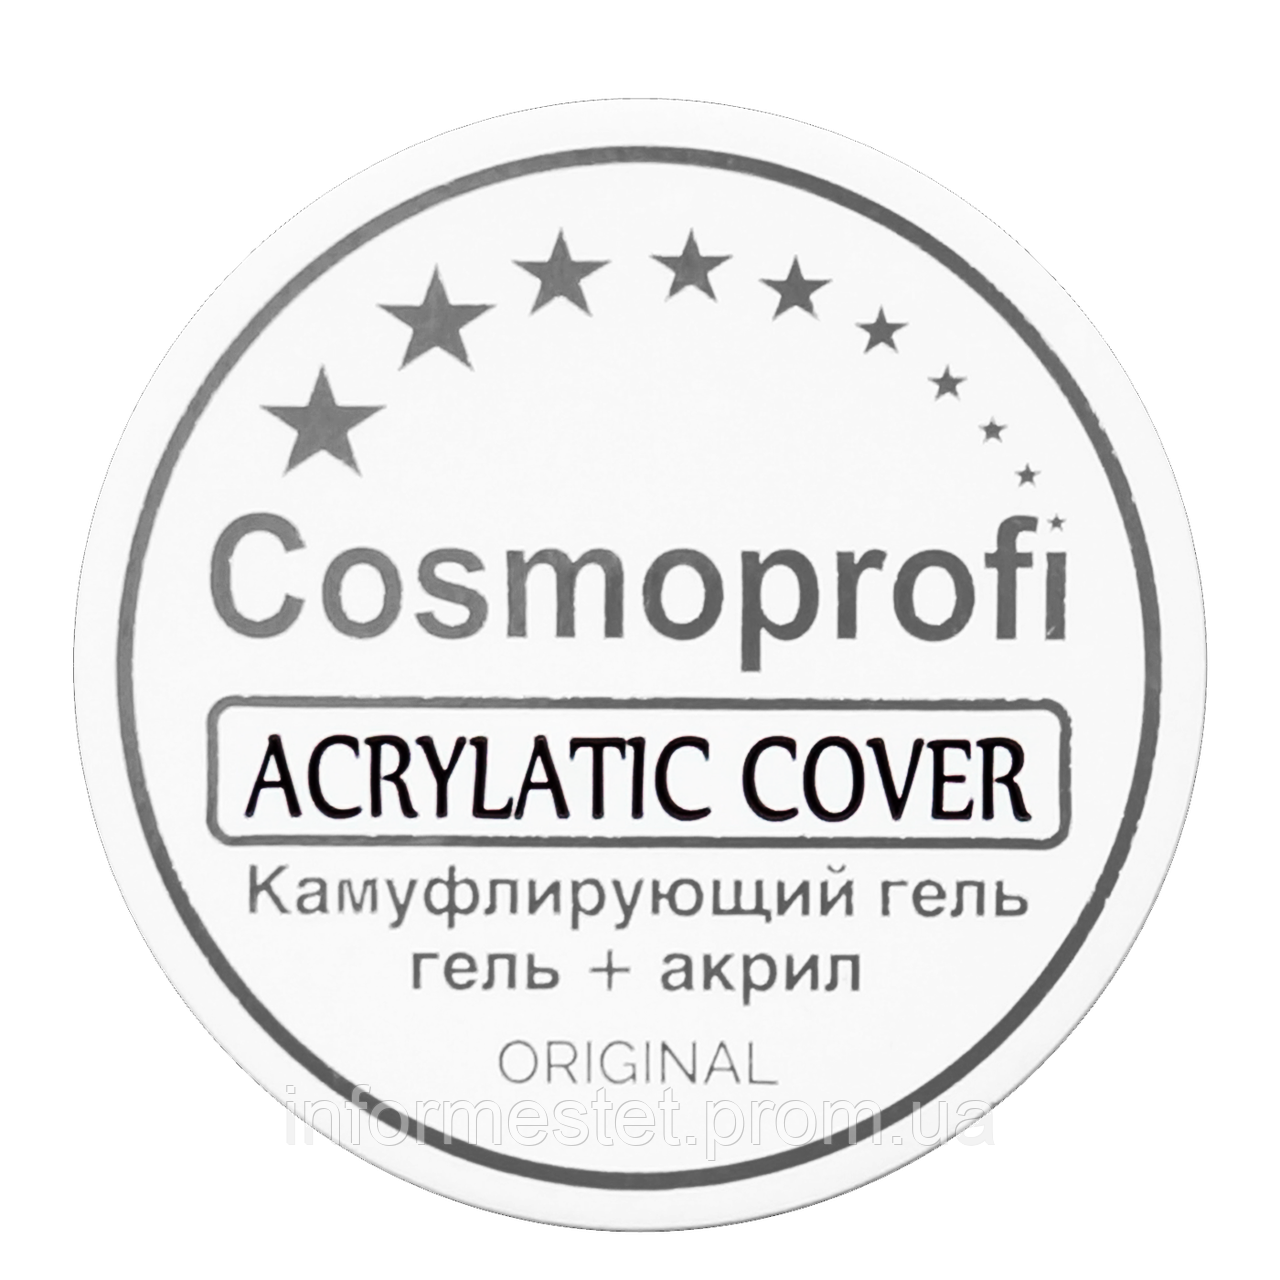 Acrylatic Cover 15г